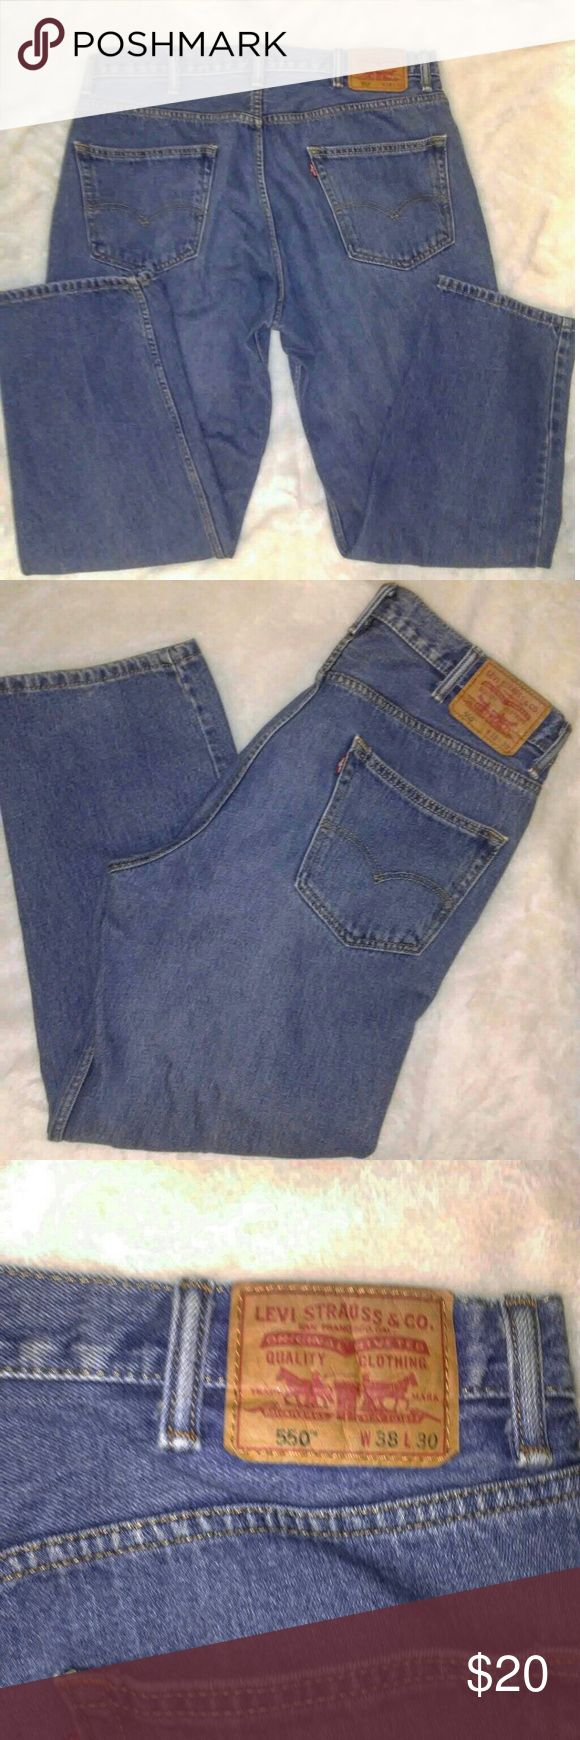 Levi Jeans 550 38x30 Big and Sexy You've got an affinity for a big strong teddy bear lover? The man that wraps you in his arms and you got a nice, warm, plump human pillow. Those winter nights your sexy teddy bear lover keeps you warm and cozy. You keep him well dressed and fattened up, so he won't go anywhere. The only Hoo-hah he needs to be focused on is yours. Well reward that big strong strapping man with some sexy Levi Jeans. Love never felt so warm.  Pre owned Great condition Levi's…